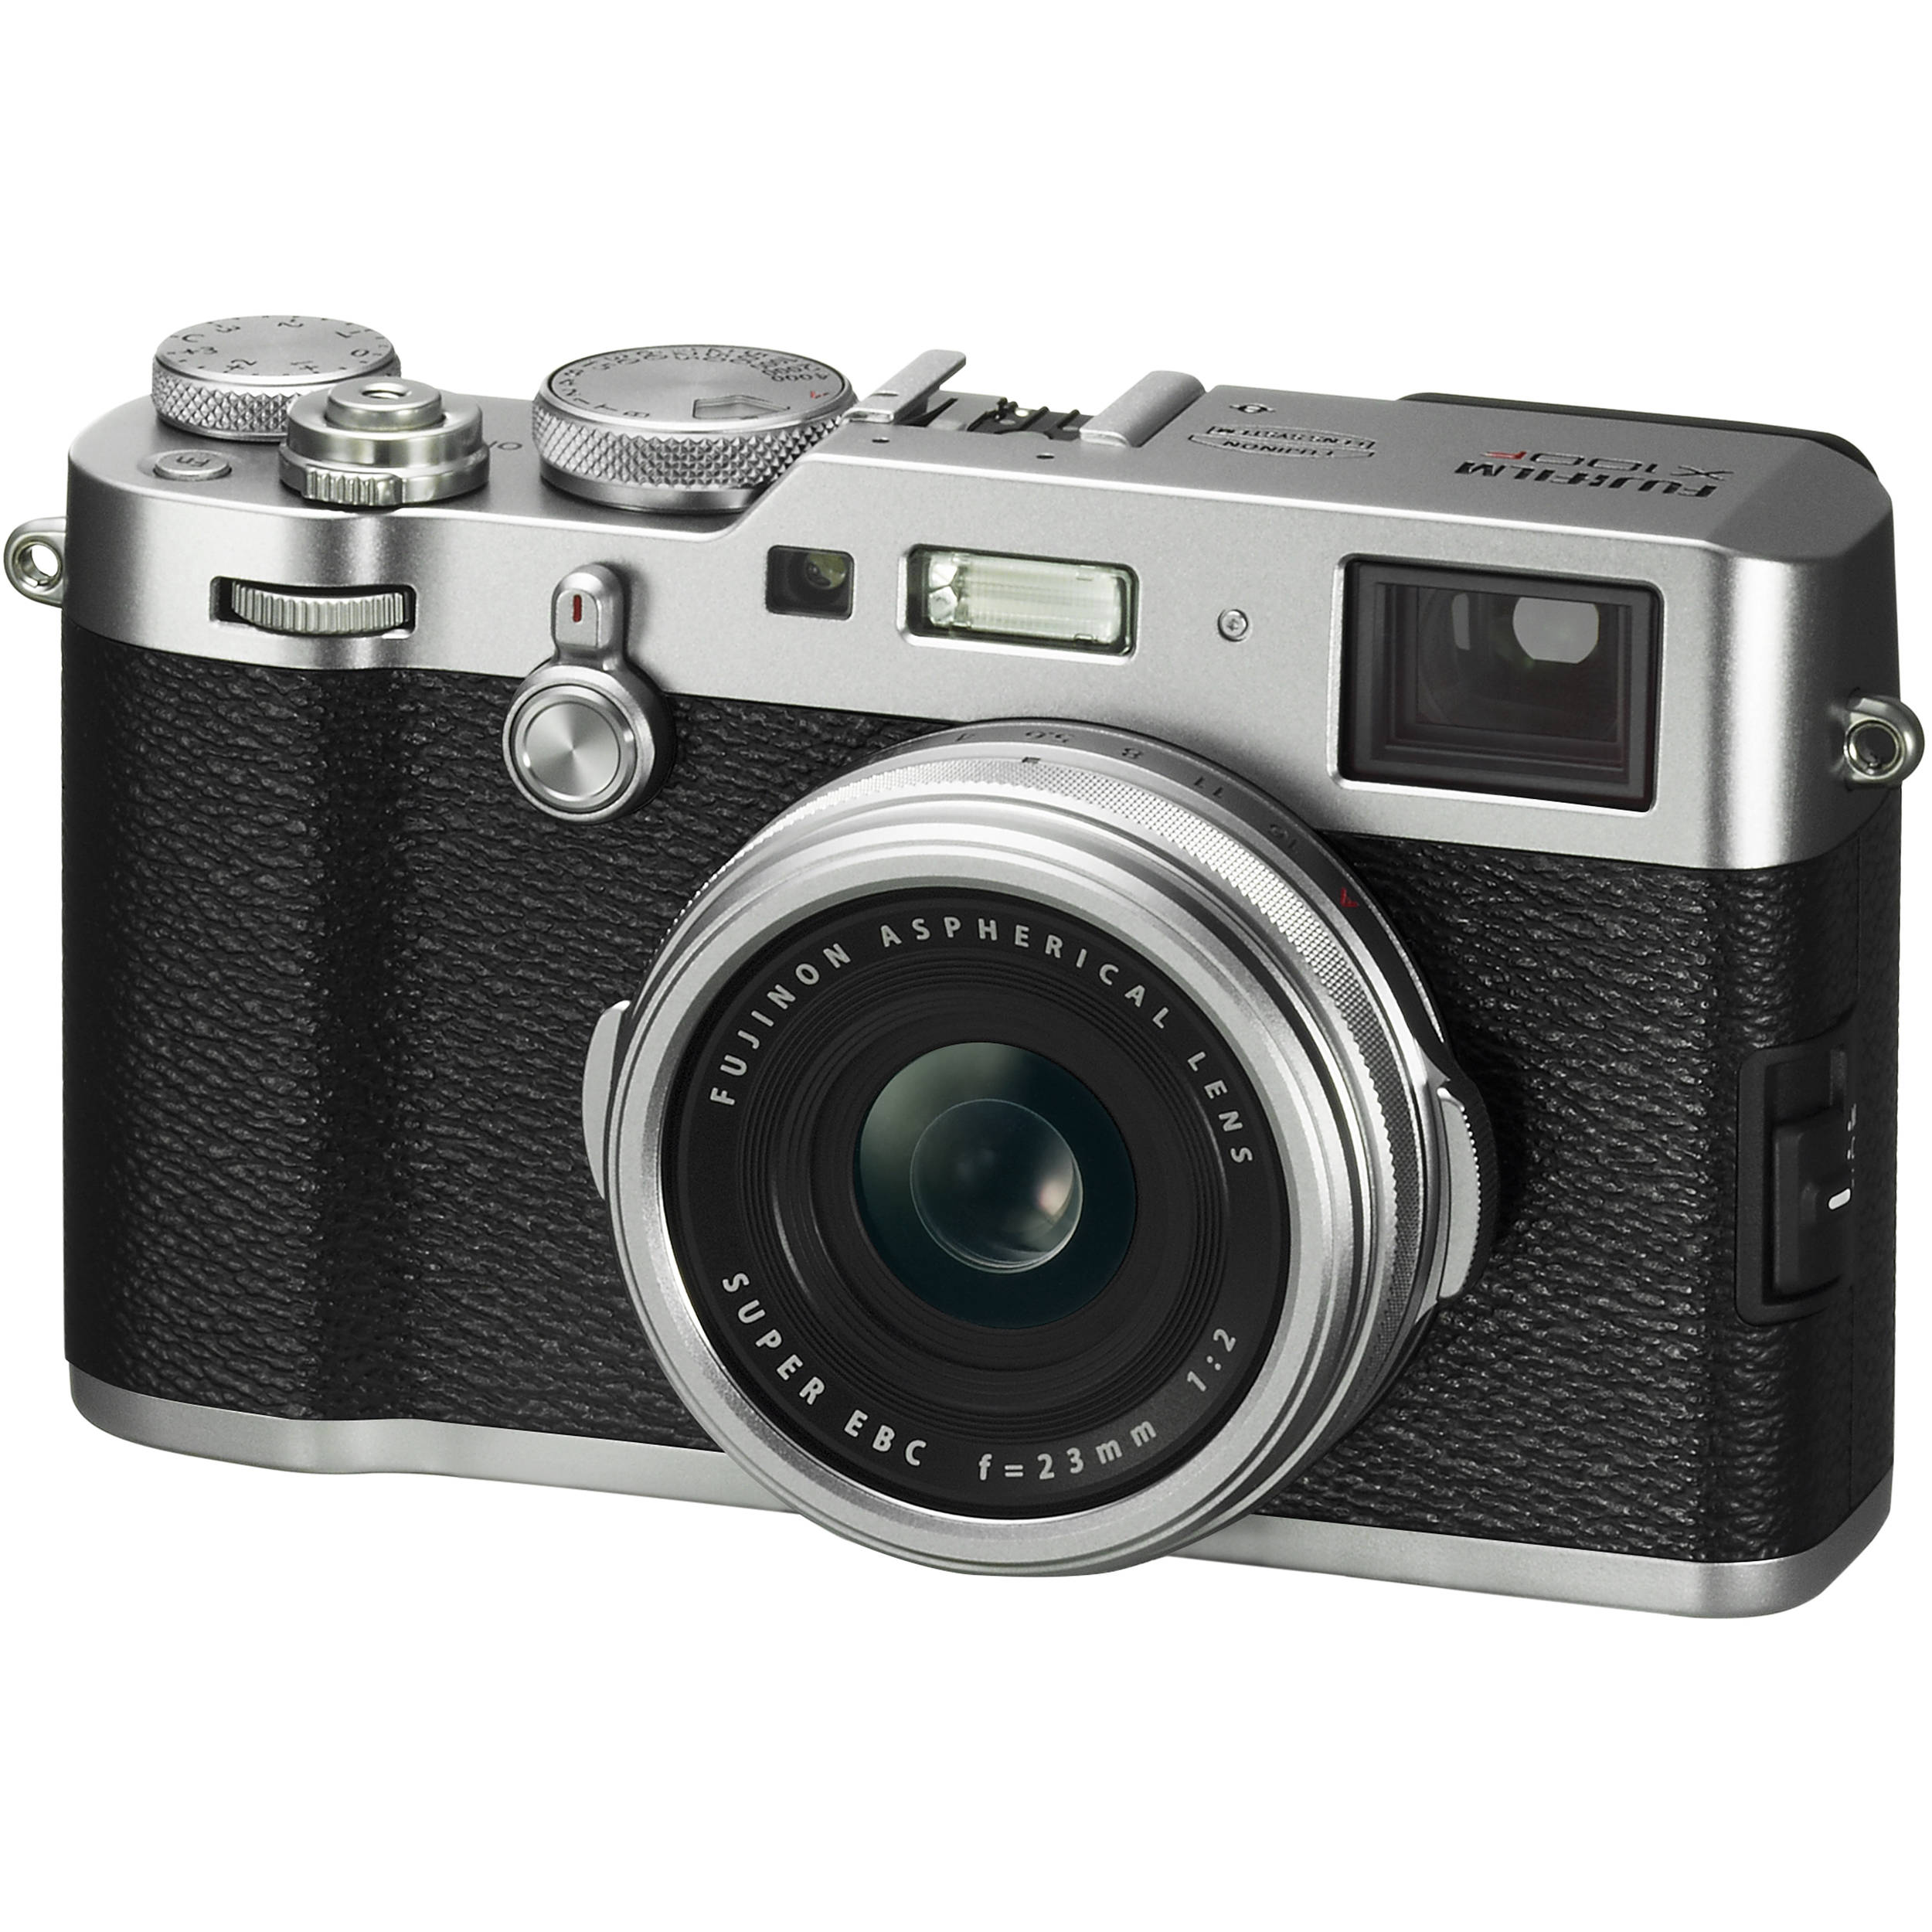 Compact and elegant coupled with incredible ease of use.  The large sensor and excellent image quality make this a winner, especially for street type work